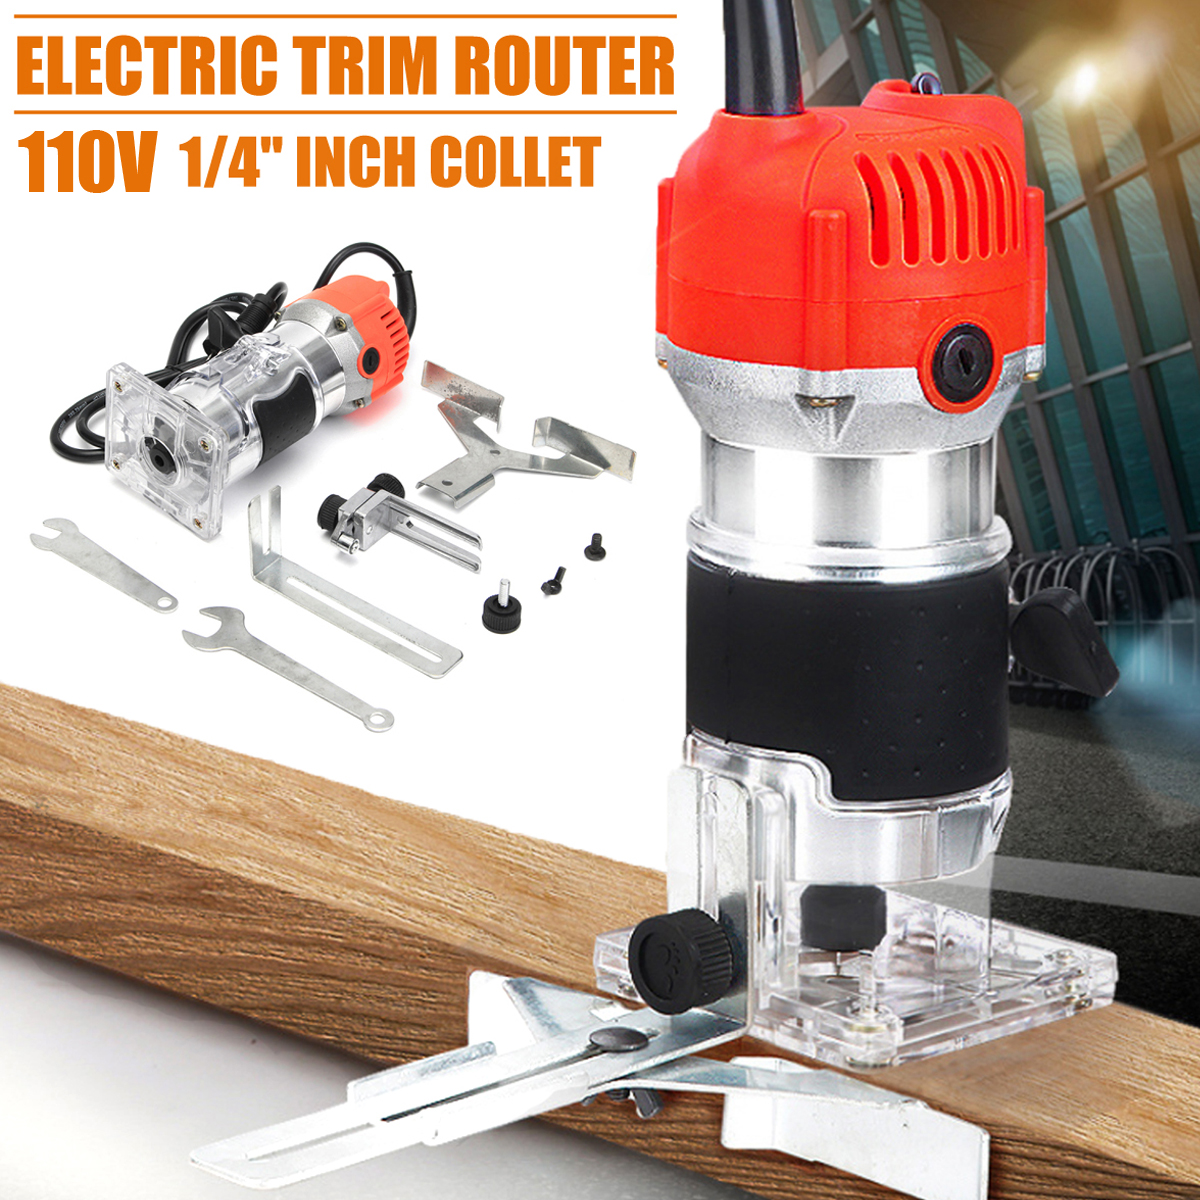 110V/220V 680W Trim Router Edge Woodworking Wood Clean Cuts Power Tool Set 33000RPM with Box